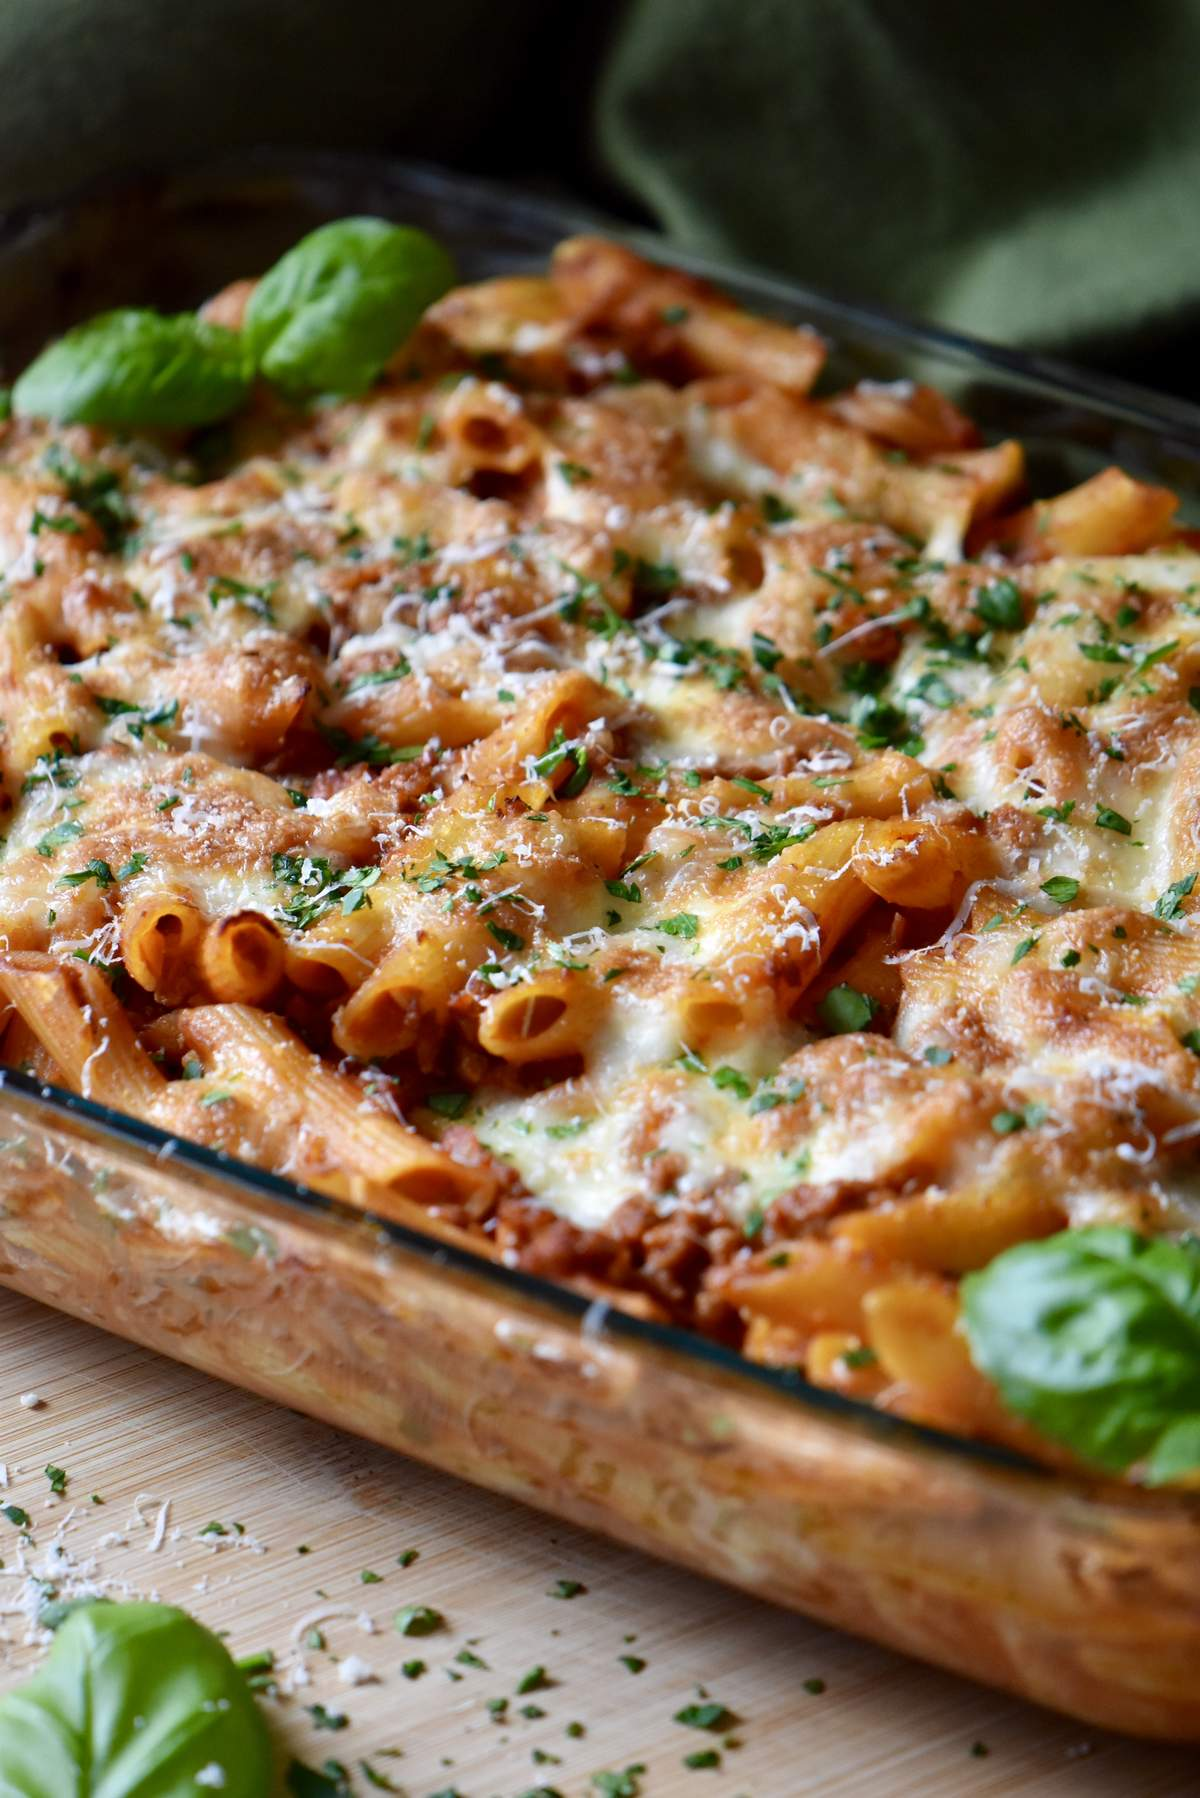 Basil leaves top a cheesy baked pasta dish.